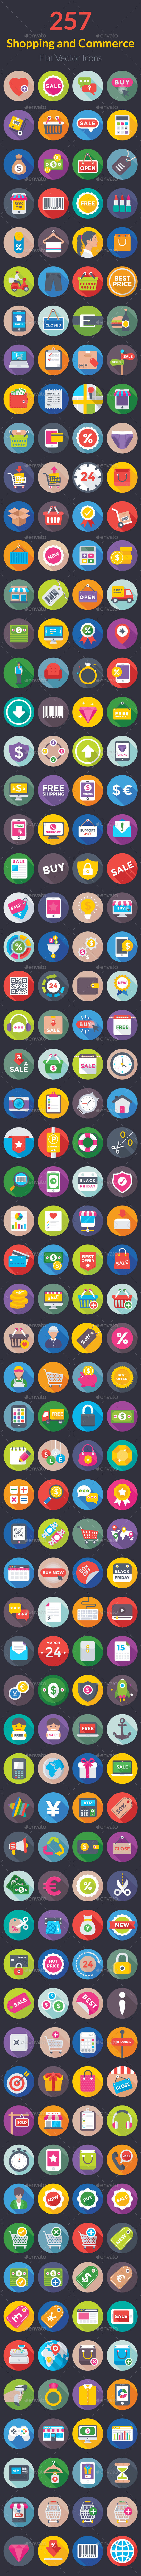 257 Shopping and Commerce Flat Icons - Icons